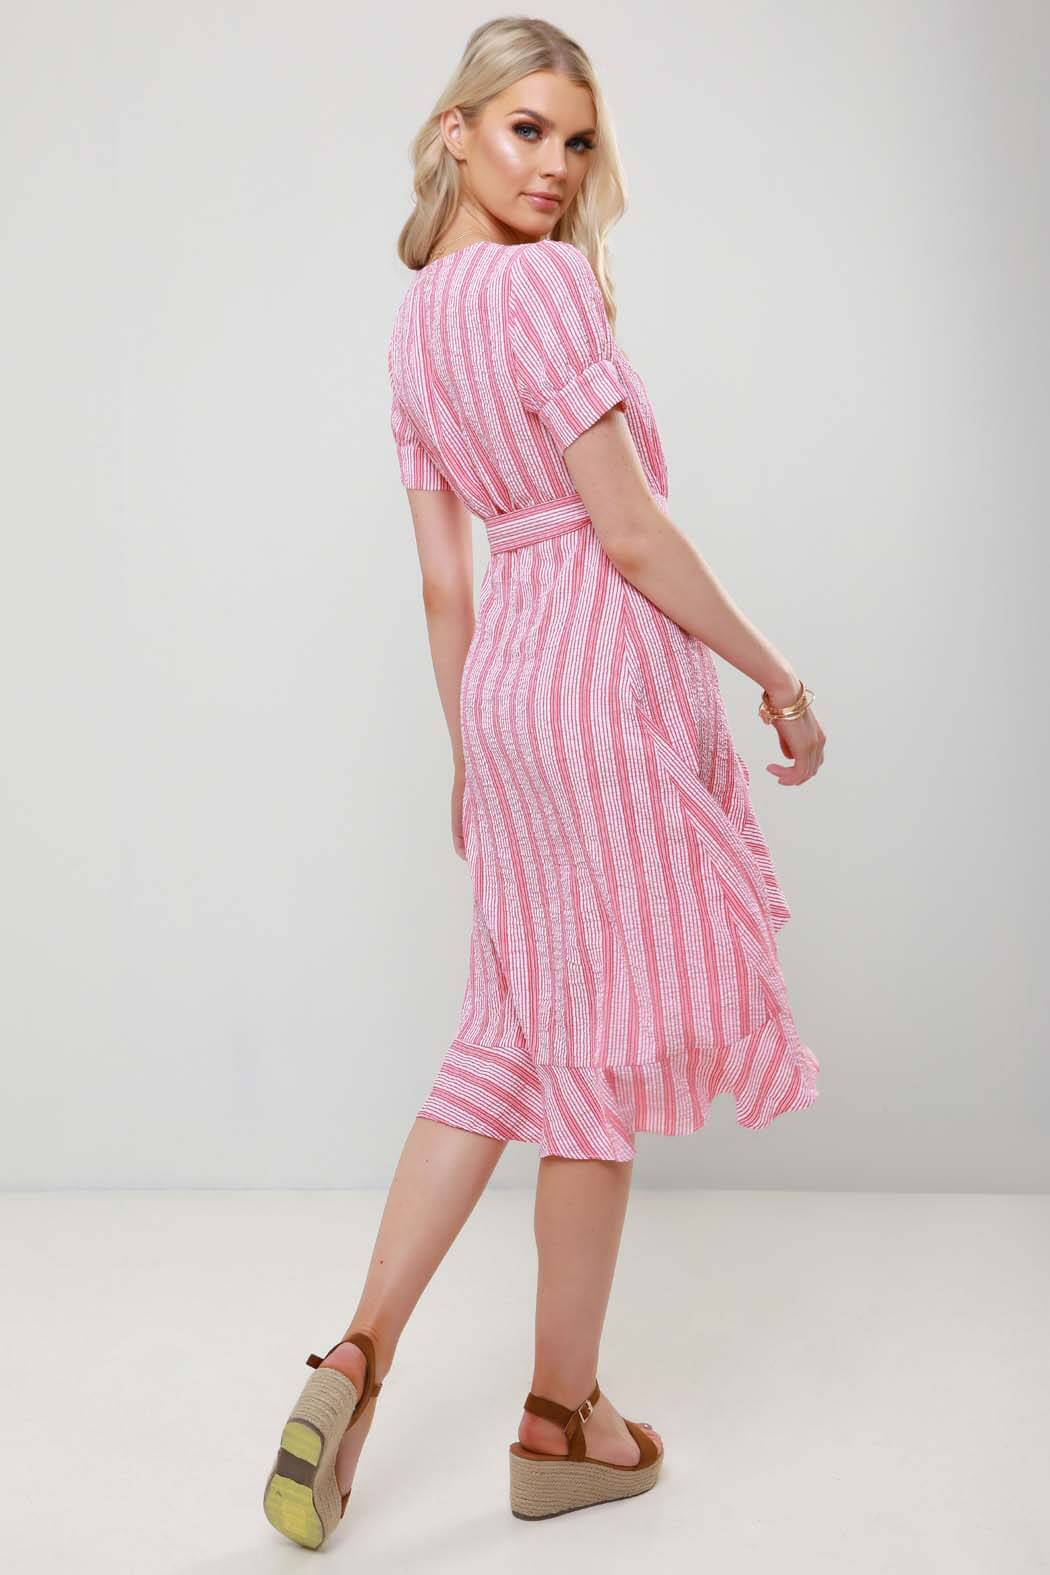 Etta Red Stripe Wrap Ruffle Midi Beach Cover Up Dress